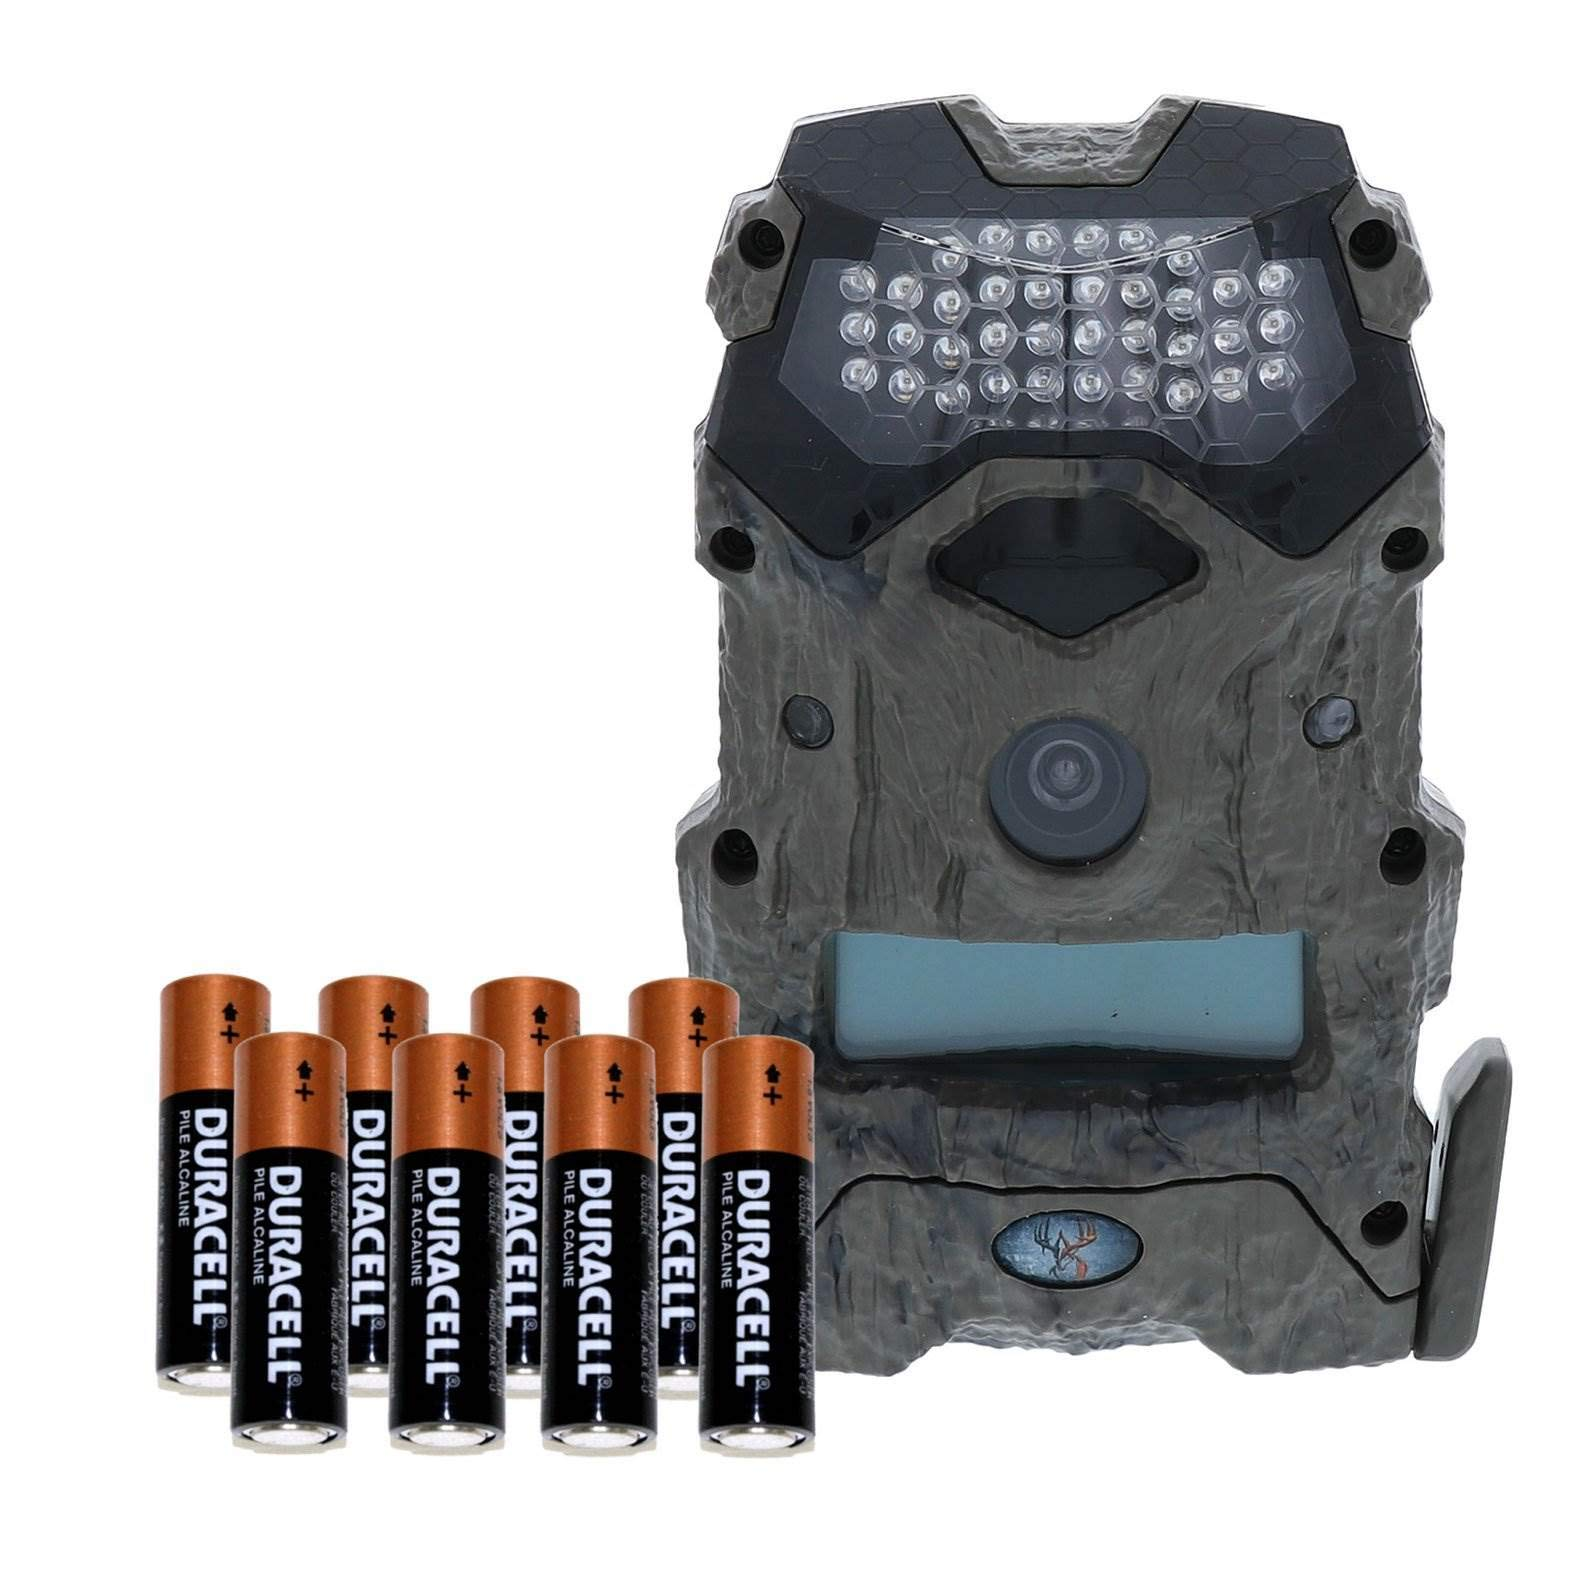 Wildgame Innovations Mirage Hunting Batteries